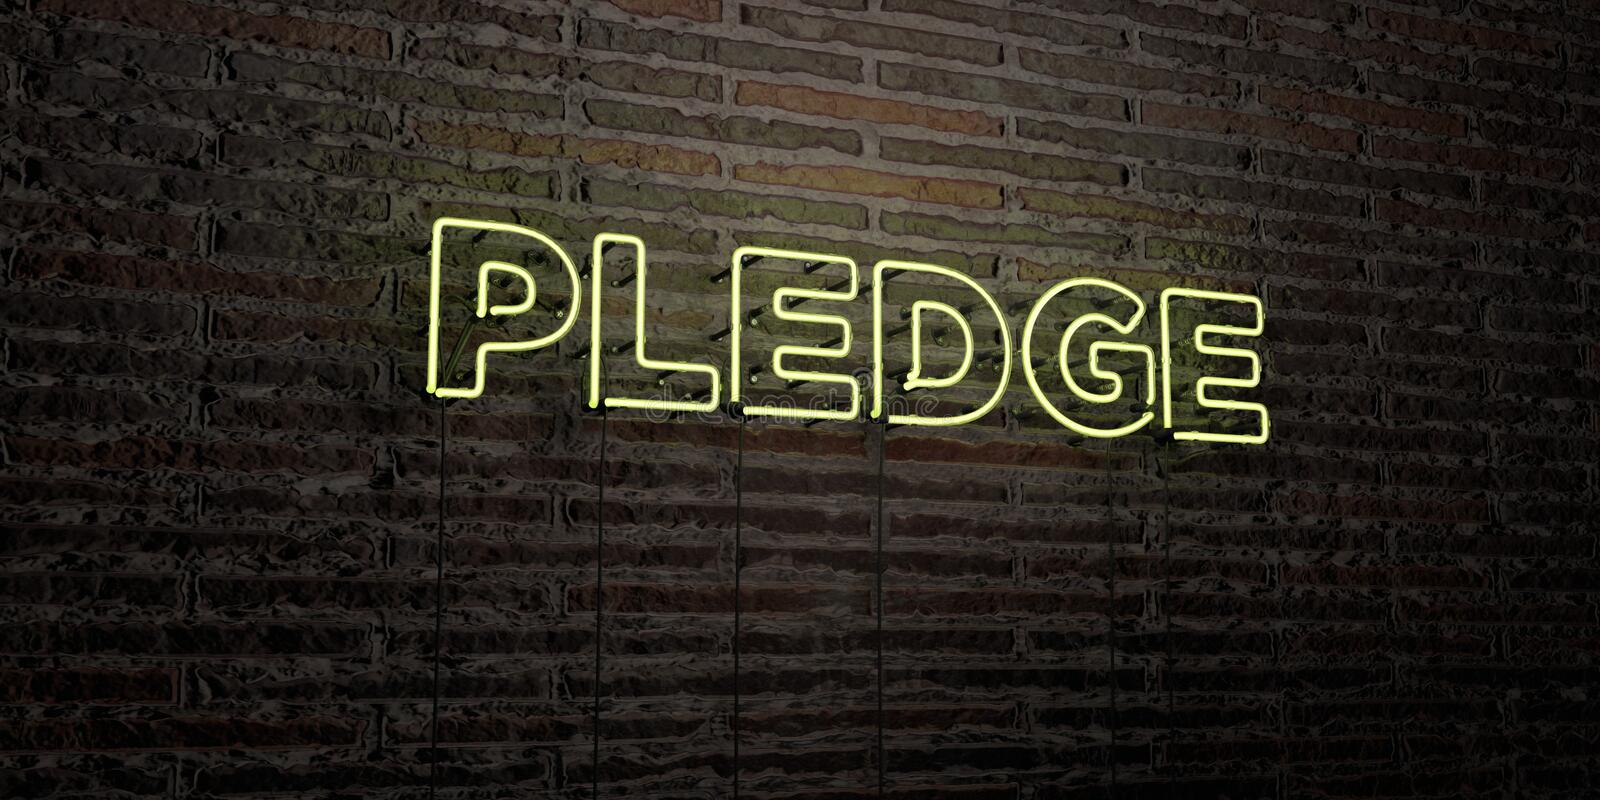 PLEDGE -Realistic Neon Sign on Brick Wall background - 3D rendered royalty free stock image. Can be used for online banner ads and direct mailers royalty free illustration